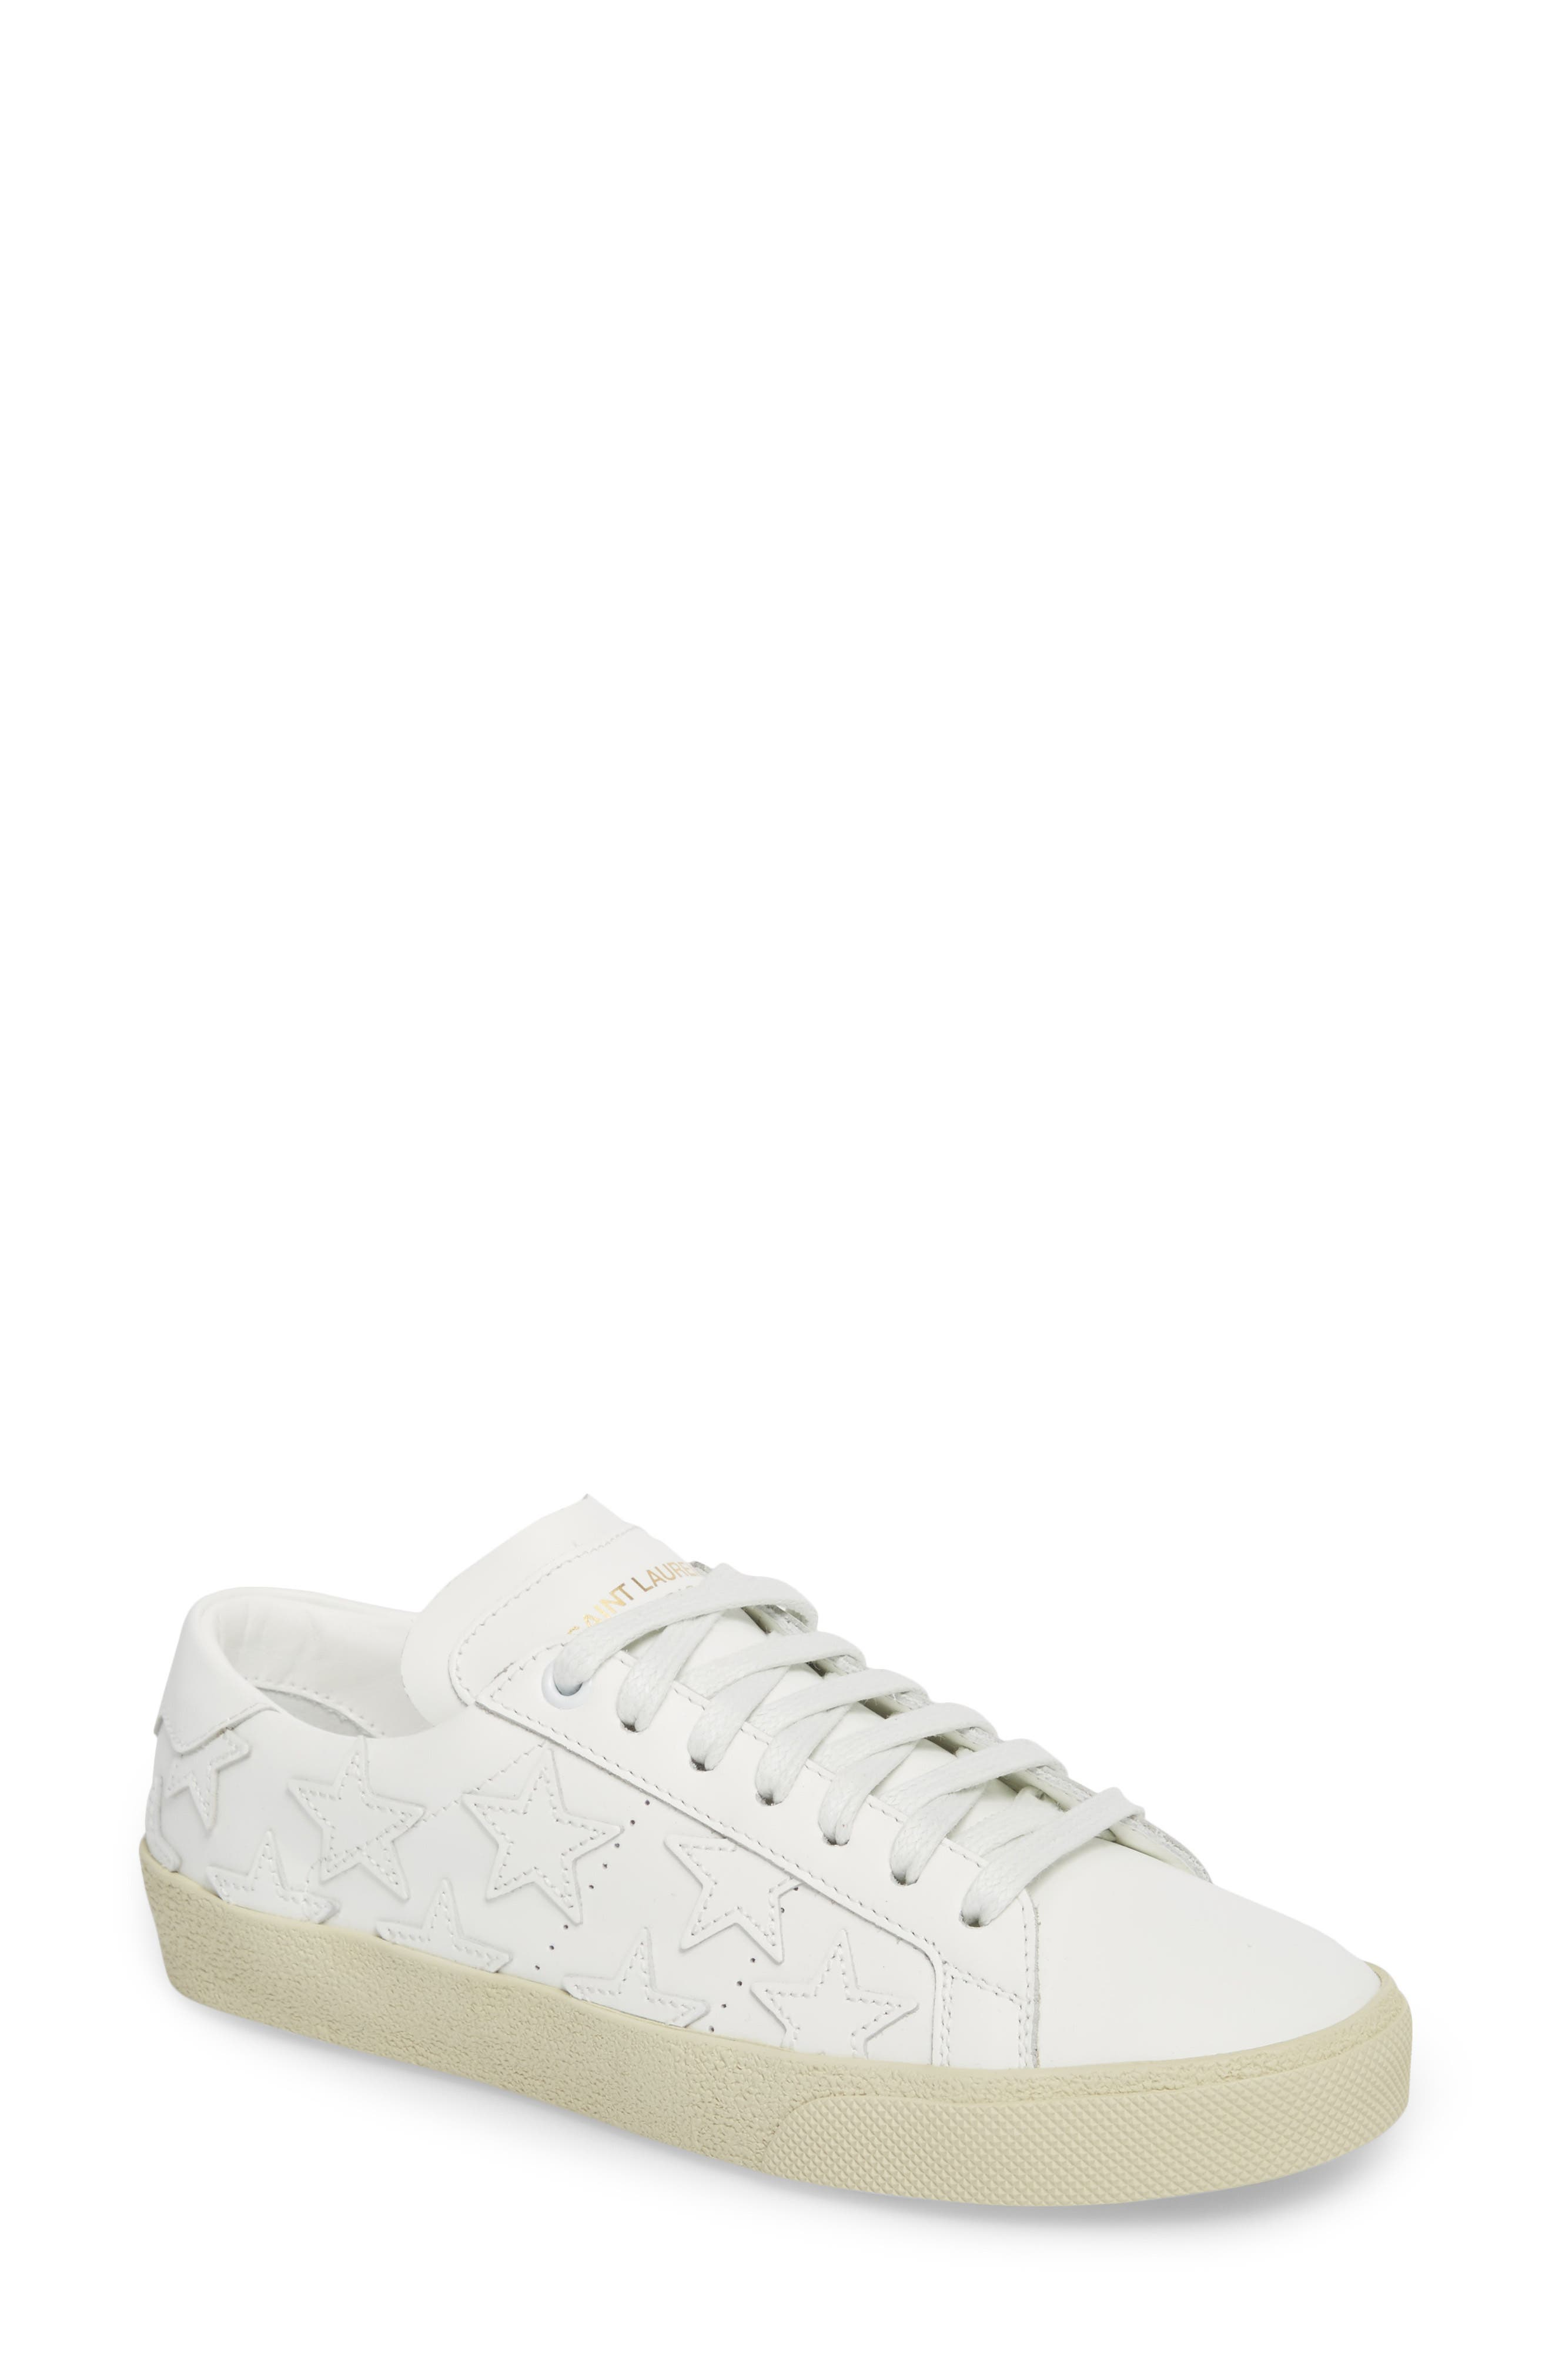 Classic Court Sneaker,                             Main thumbnail 1, color,                             Ivory Leather